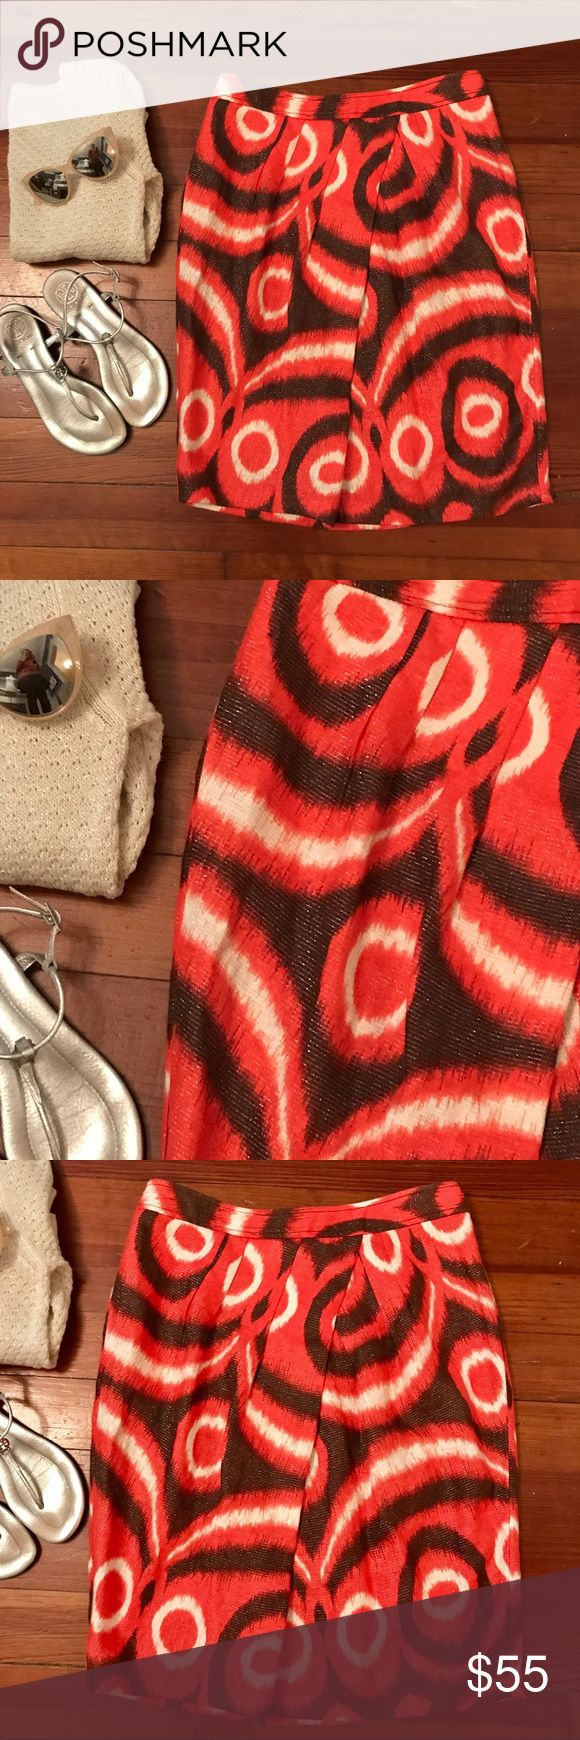 """Tory Burch Metallic Thread Linen Skirt NEW Beautiful Ikat print linen skirt! The color is a vibrant red orange called """"Poppy"""" with brown, cream and a gorgeous metallic thread. Pleated front and hidden zipper in back. NEW!! Tory Burch Skirts Midi"""